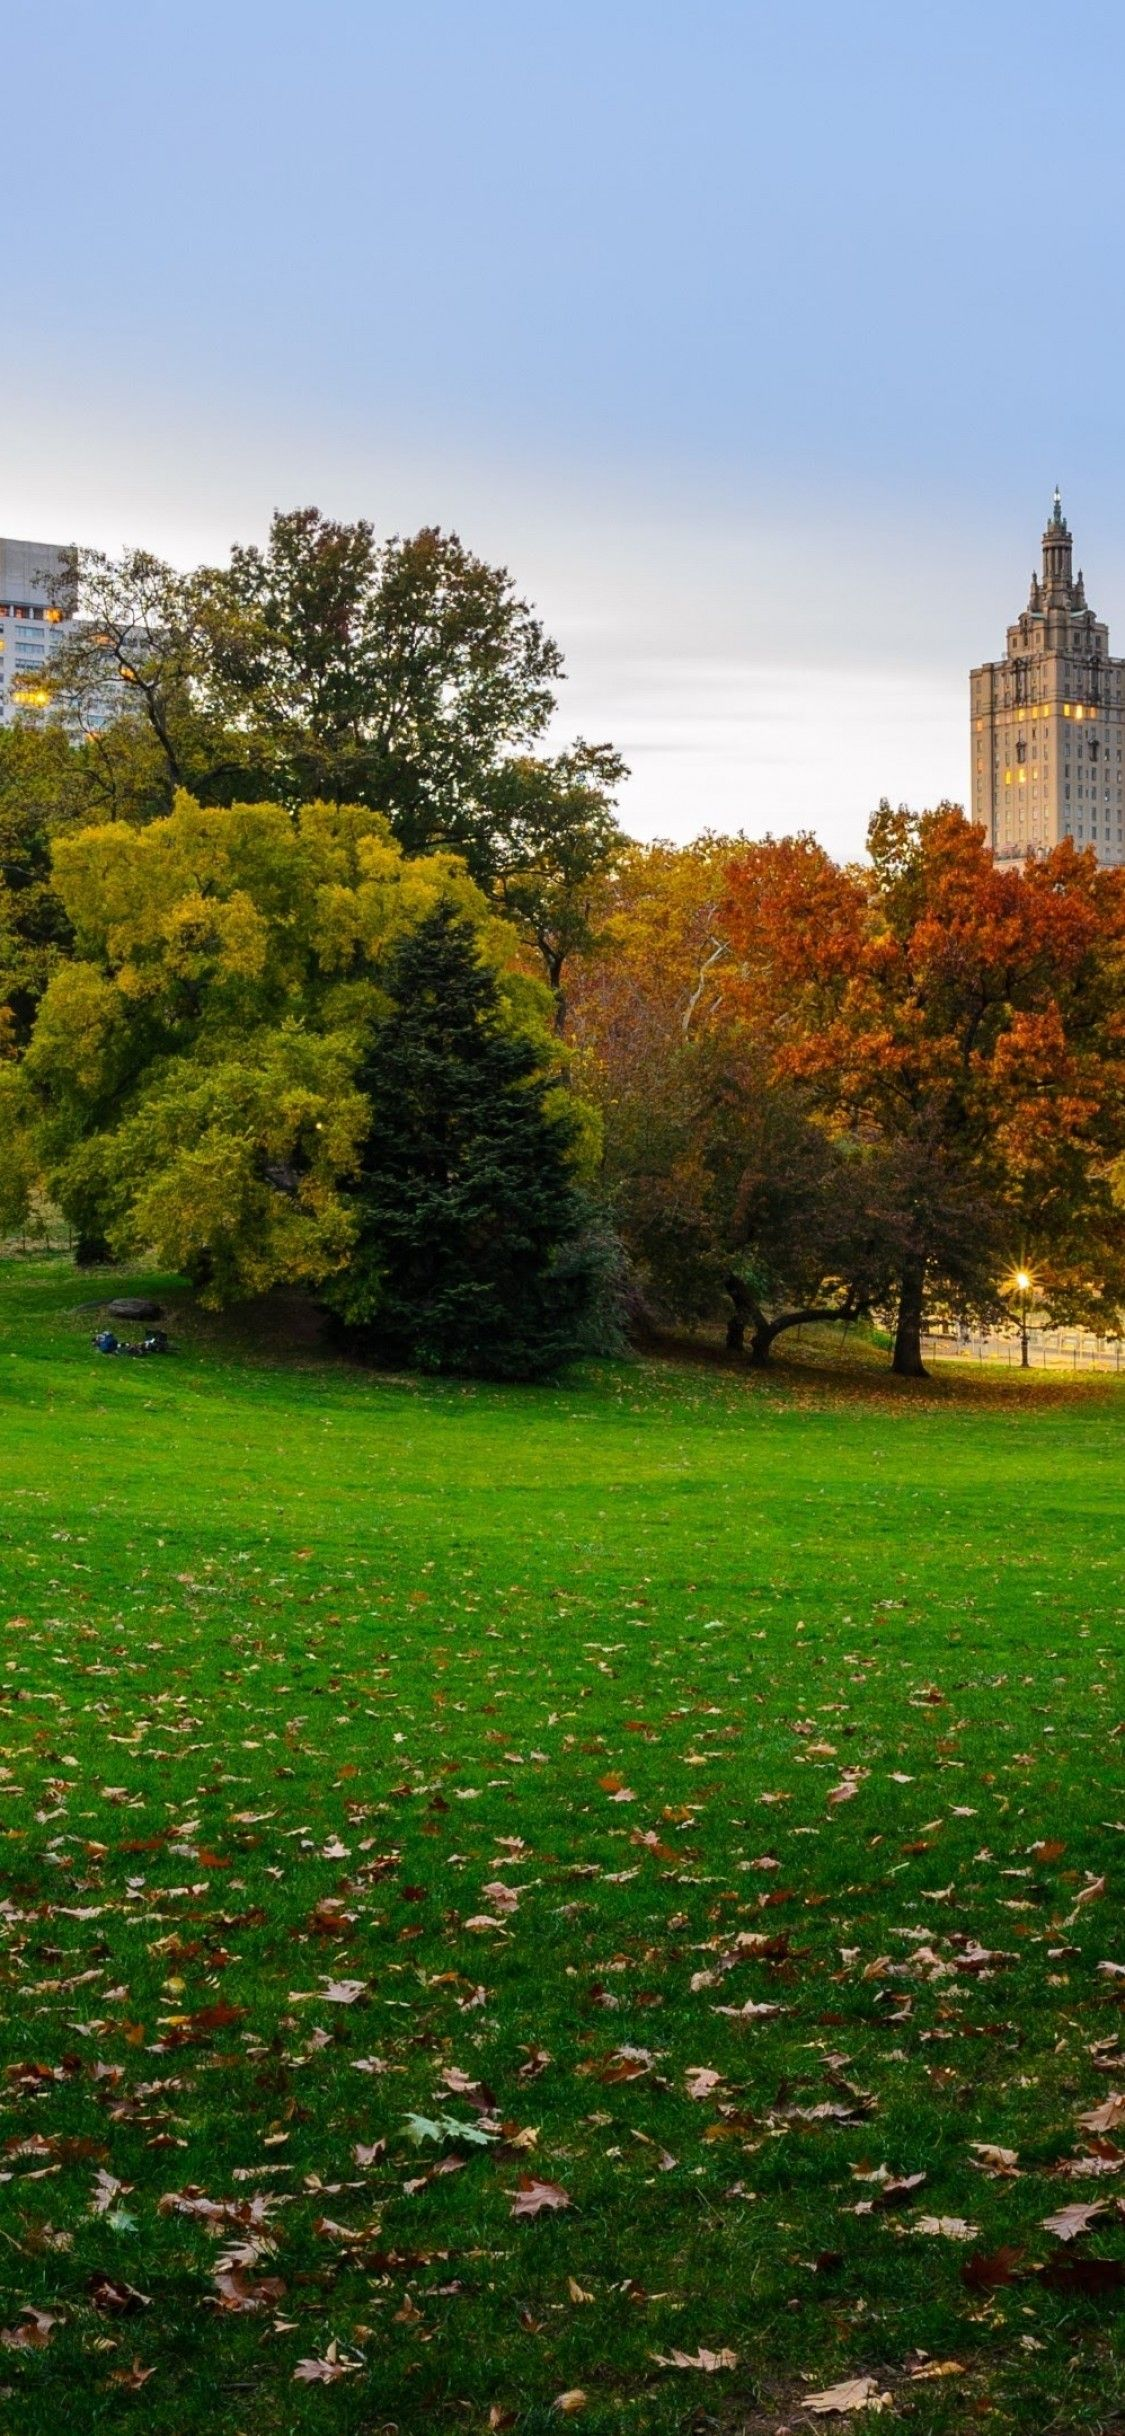 1125x2436 Download 1125x2436 New York Central Park, Buildings ...